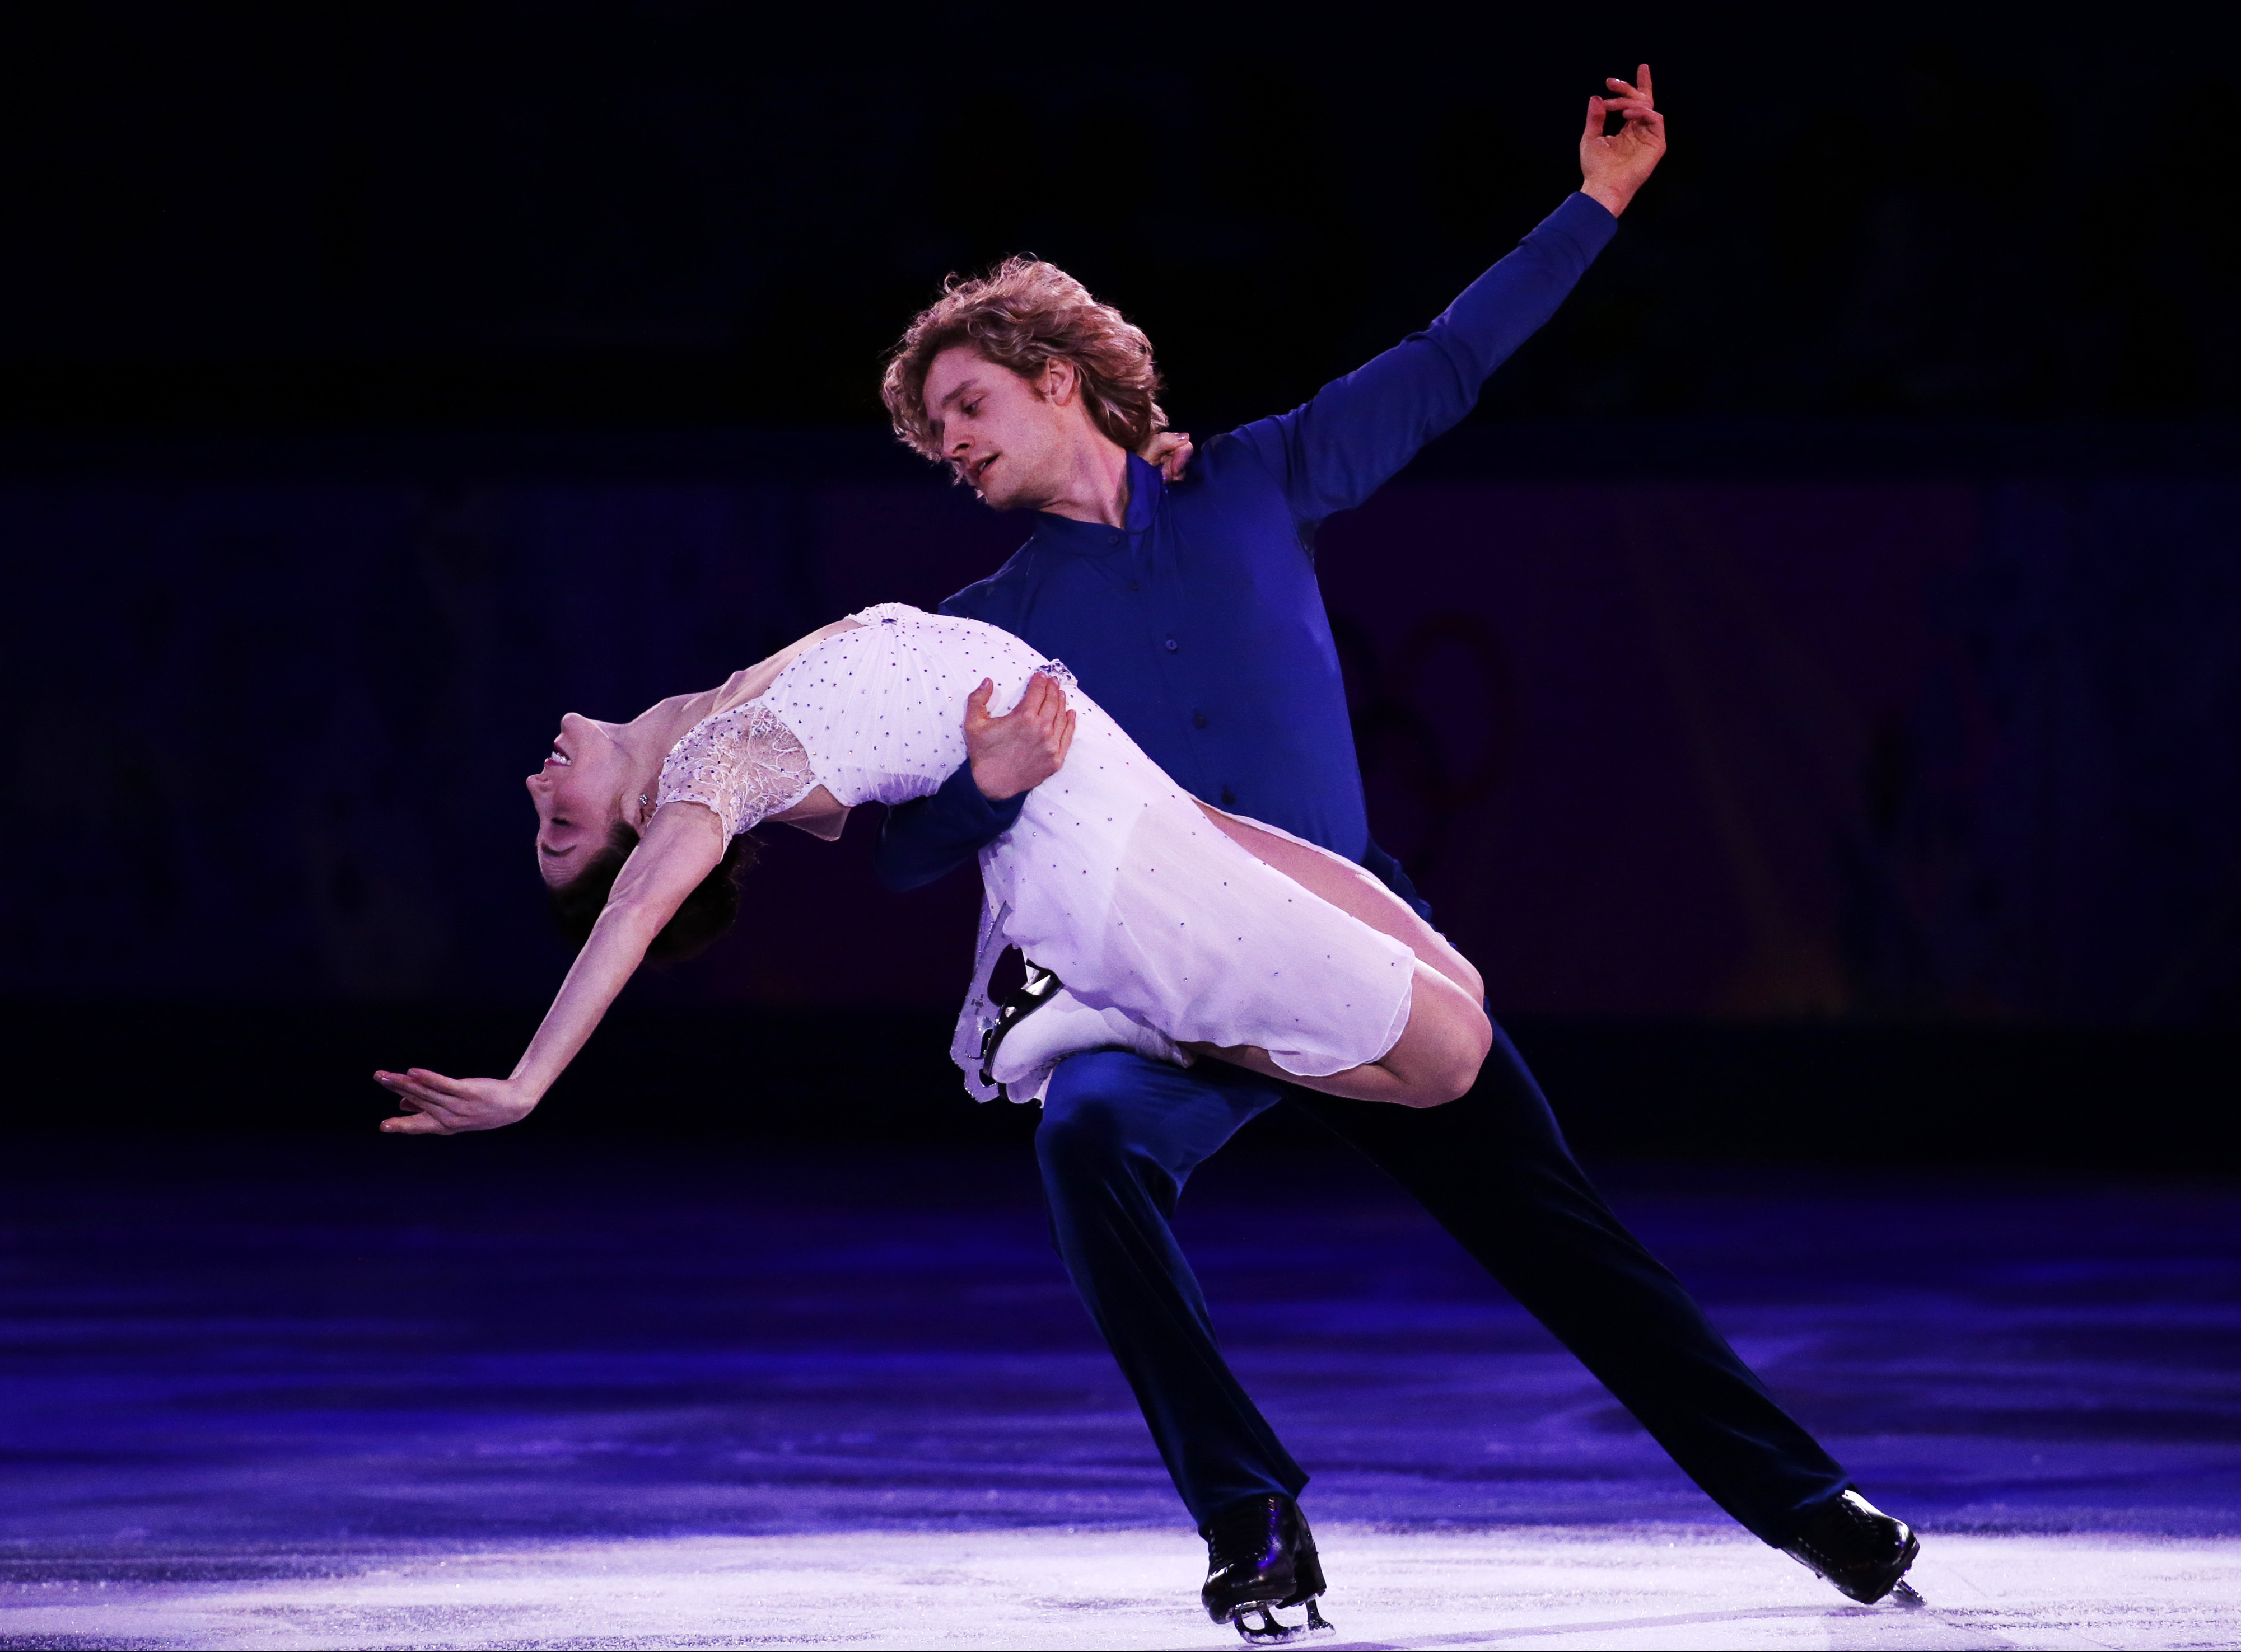 FILE - In this Feb. 22, 2014 file photo, Meryl Davis and Charlie White of the United States perform during the figure skating exhibition gala at the Iceberg Skating Palace during the 2014 Winter Olympics in Sochi, Russia.  Davis and  White won't be defend